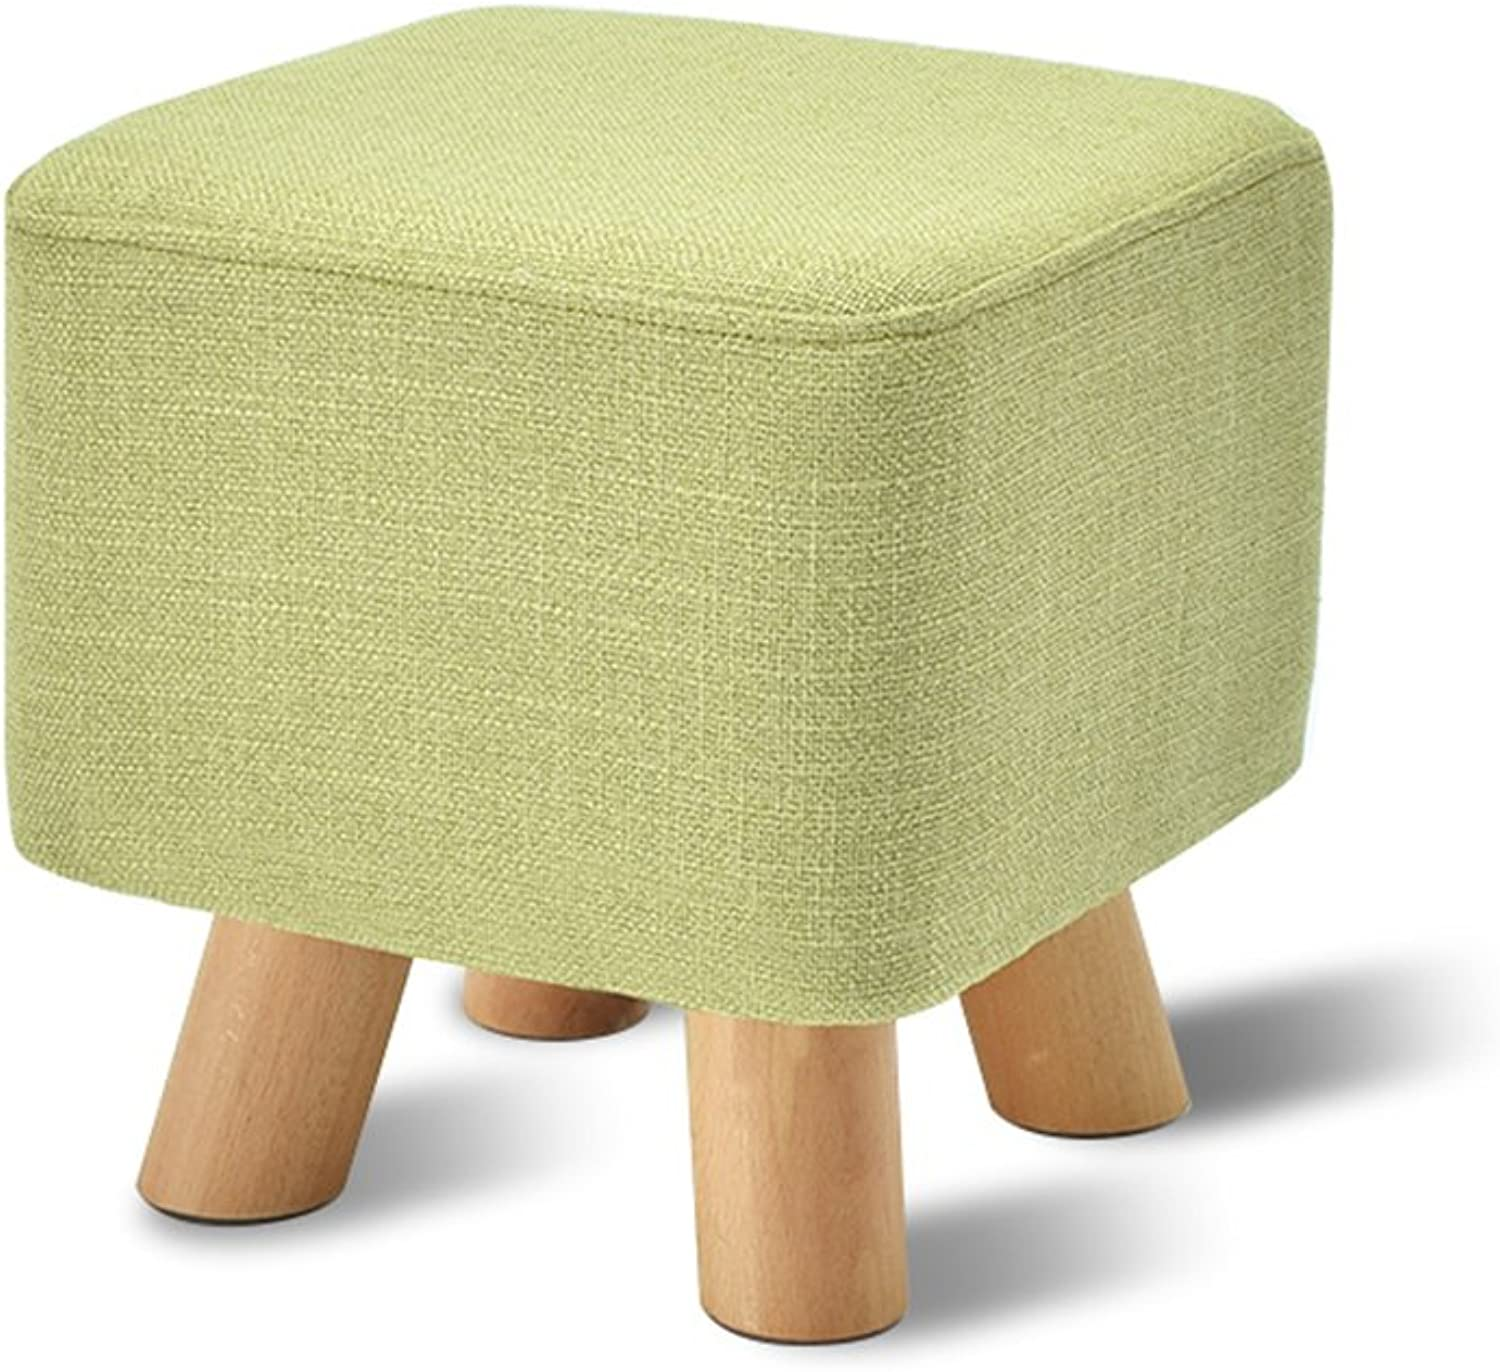 Household stool  Solid wood stool  living room sofa stool   Bed stool Multifunctional footstool   Coffee Table Stool  Creative shoe bench   Bench 292927cm -by TIANTA ( color   Green )